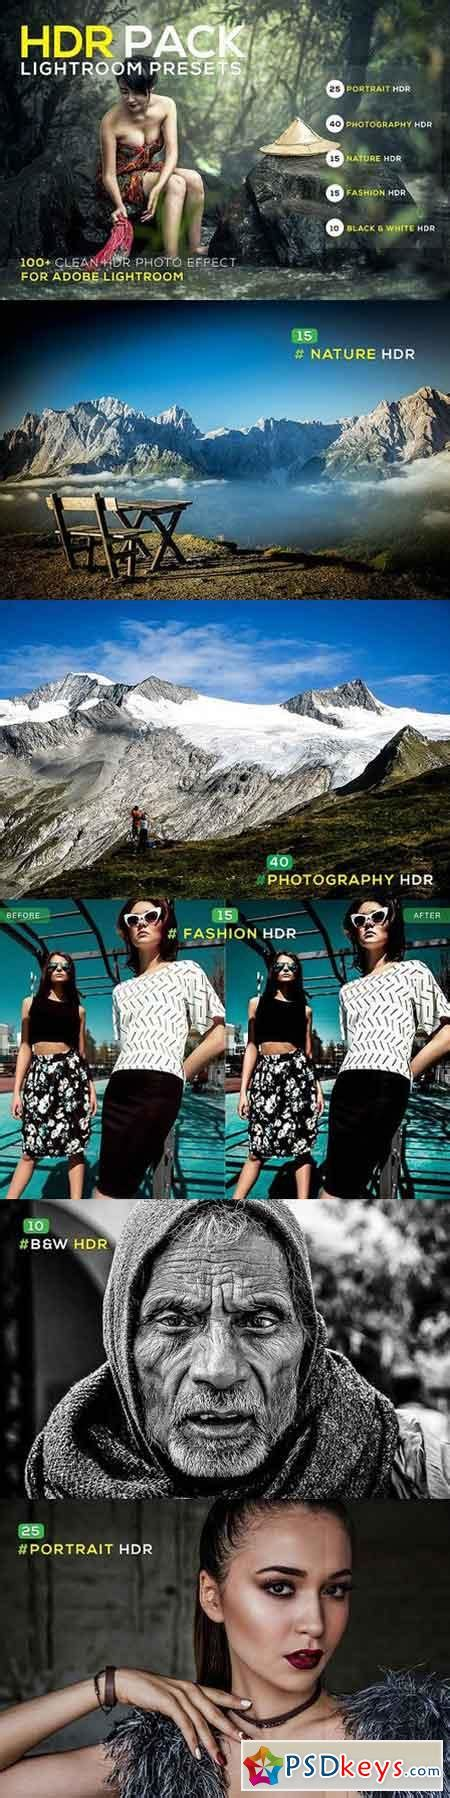 Browse and download free lightroom presets in every style. 100+ HDR Lightroom Presets 1086702 » Free Download ...